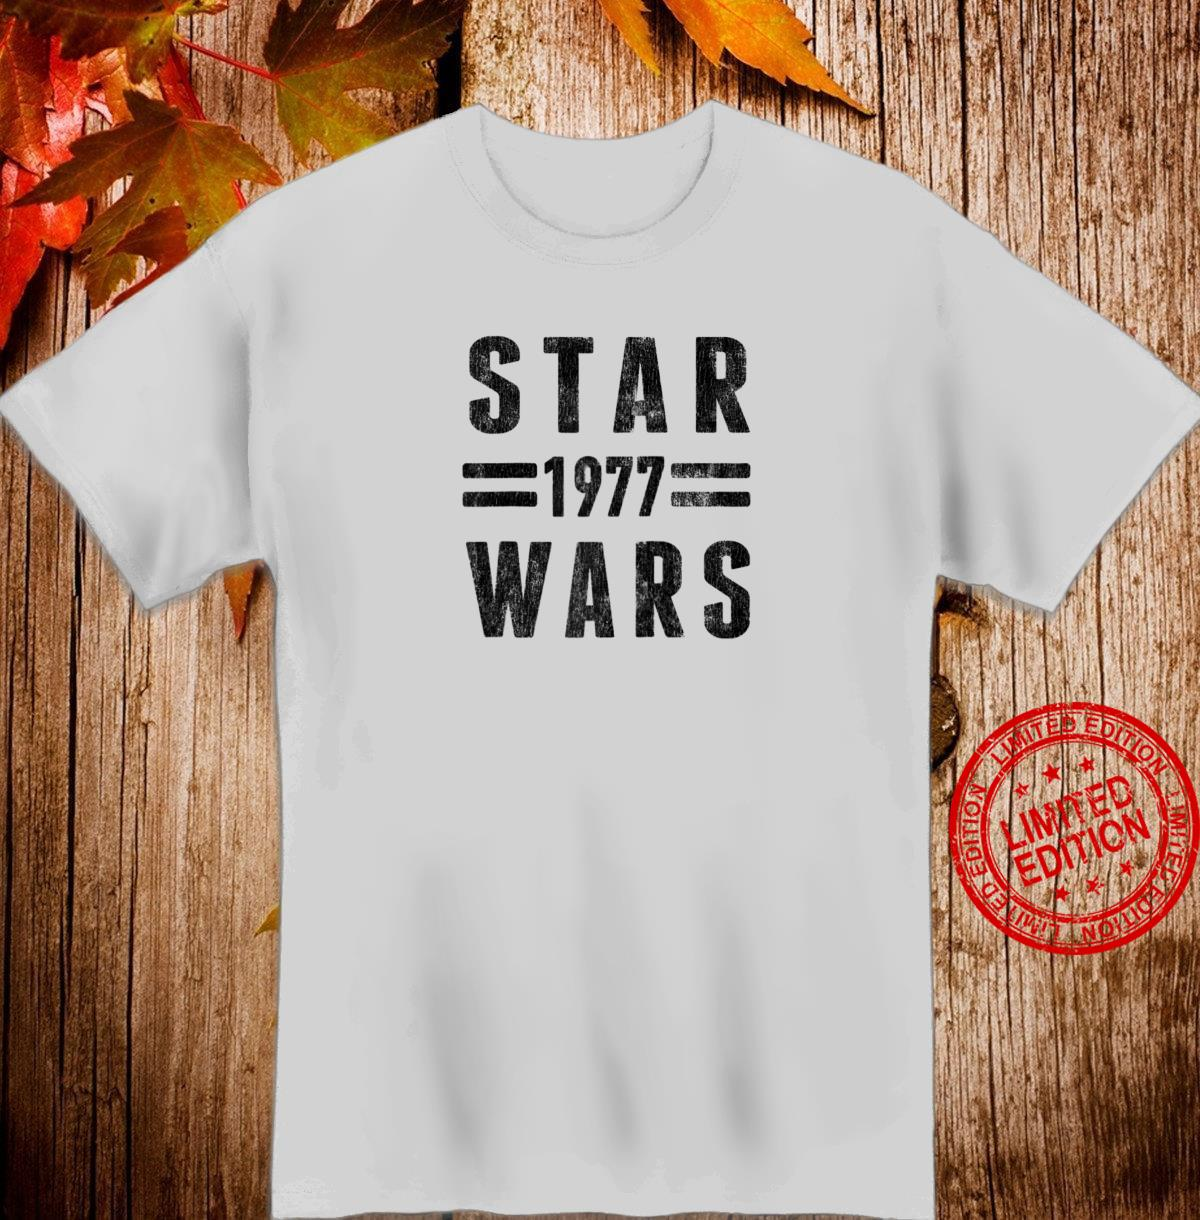 Star Wars 1977 Vintage Collegiate Retro Shirt